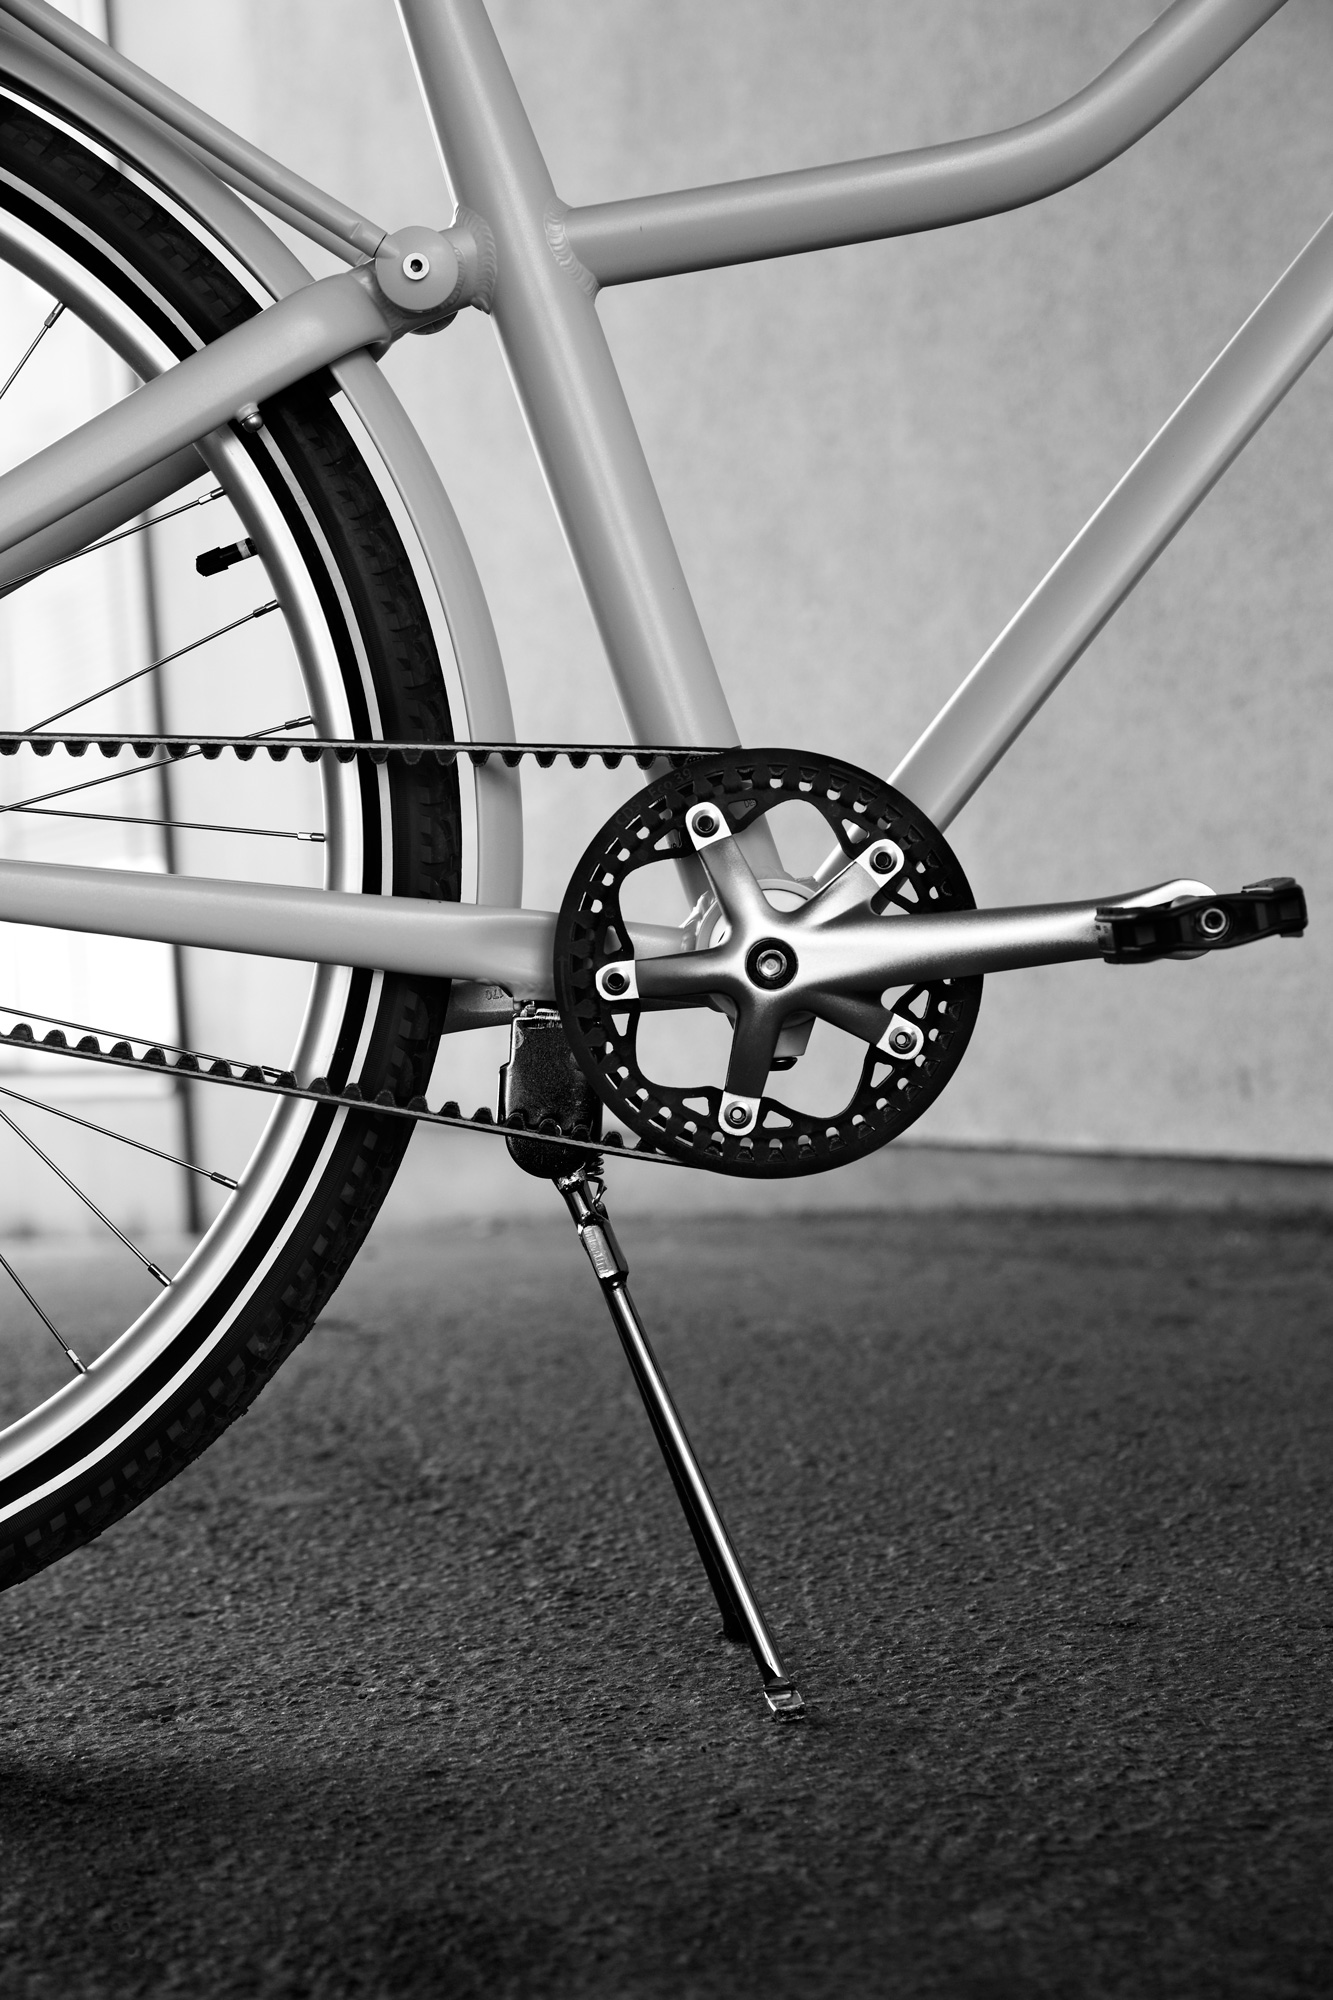 Parts of the frame, a wheel and the pedals of a bike.